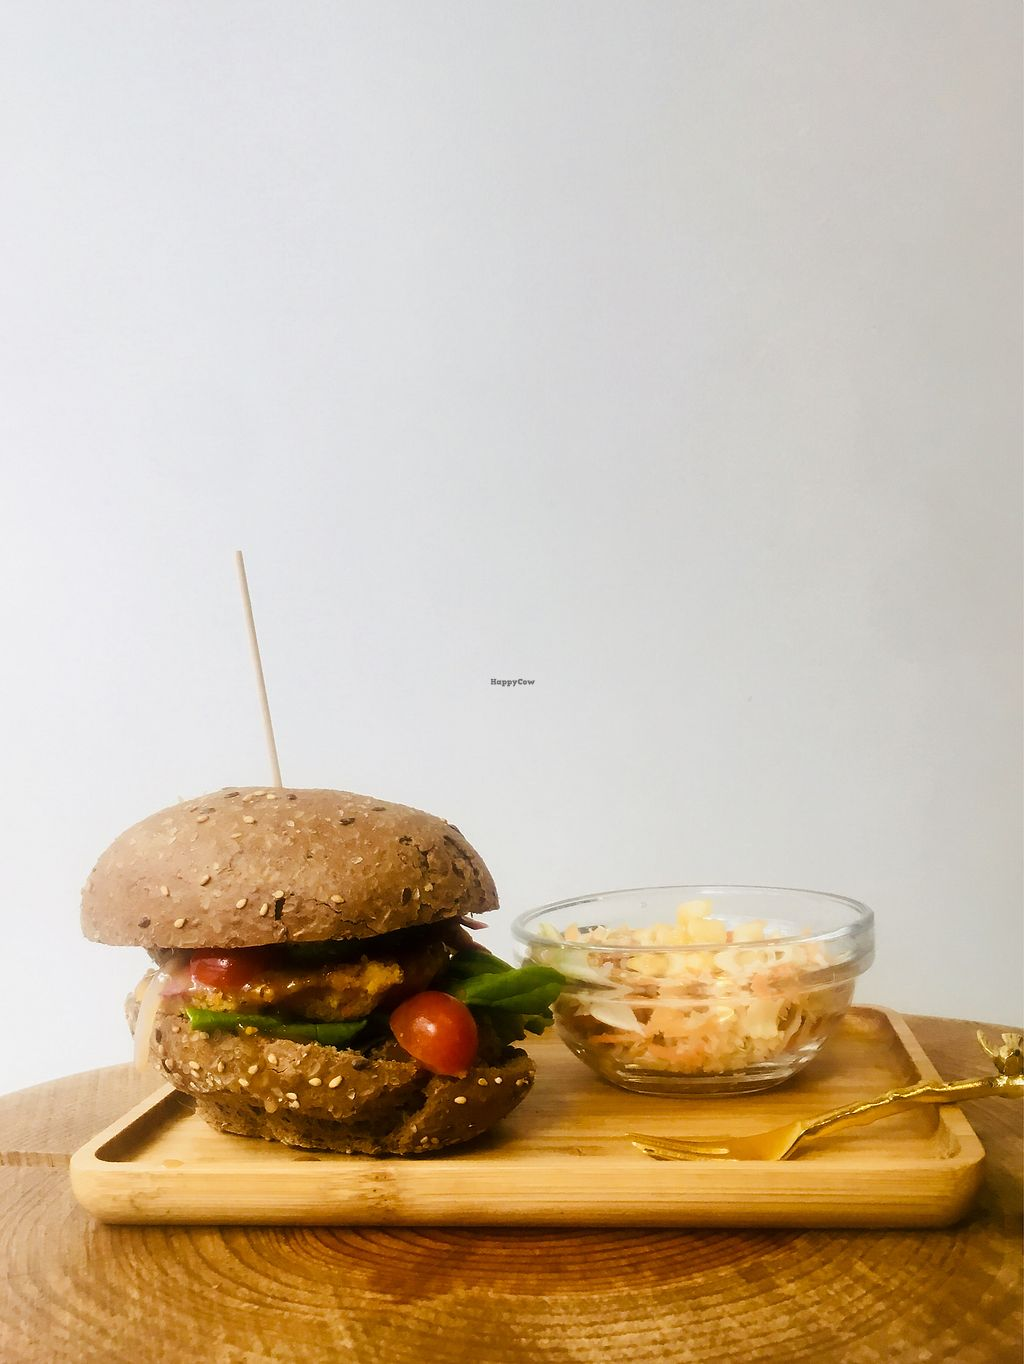 """Photo of Pure Food  by <a href=""""/members/profile/Bananacake"""">Bananacake</a> <br/>Vegan friendly burger with coleslaw salad. Ask for dressing without mustard  <br/> January 11, 2018  - <a href='/contact/abuse/image/109277/345618'>Report</a>"""